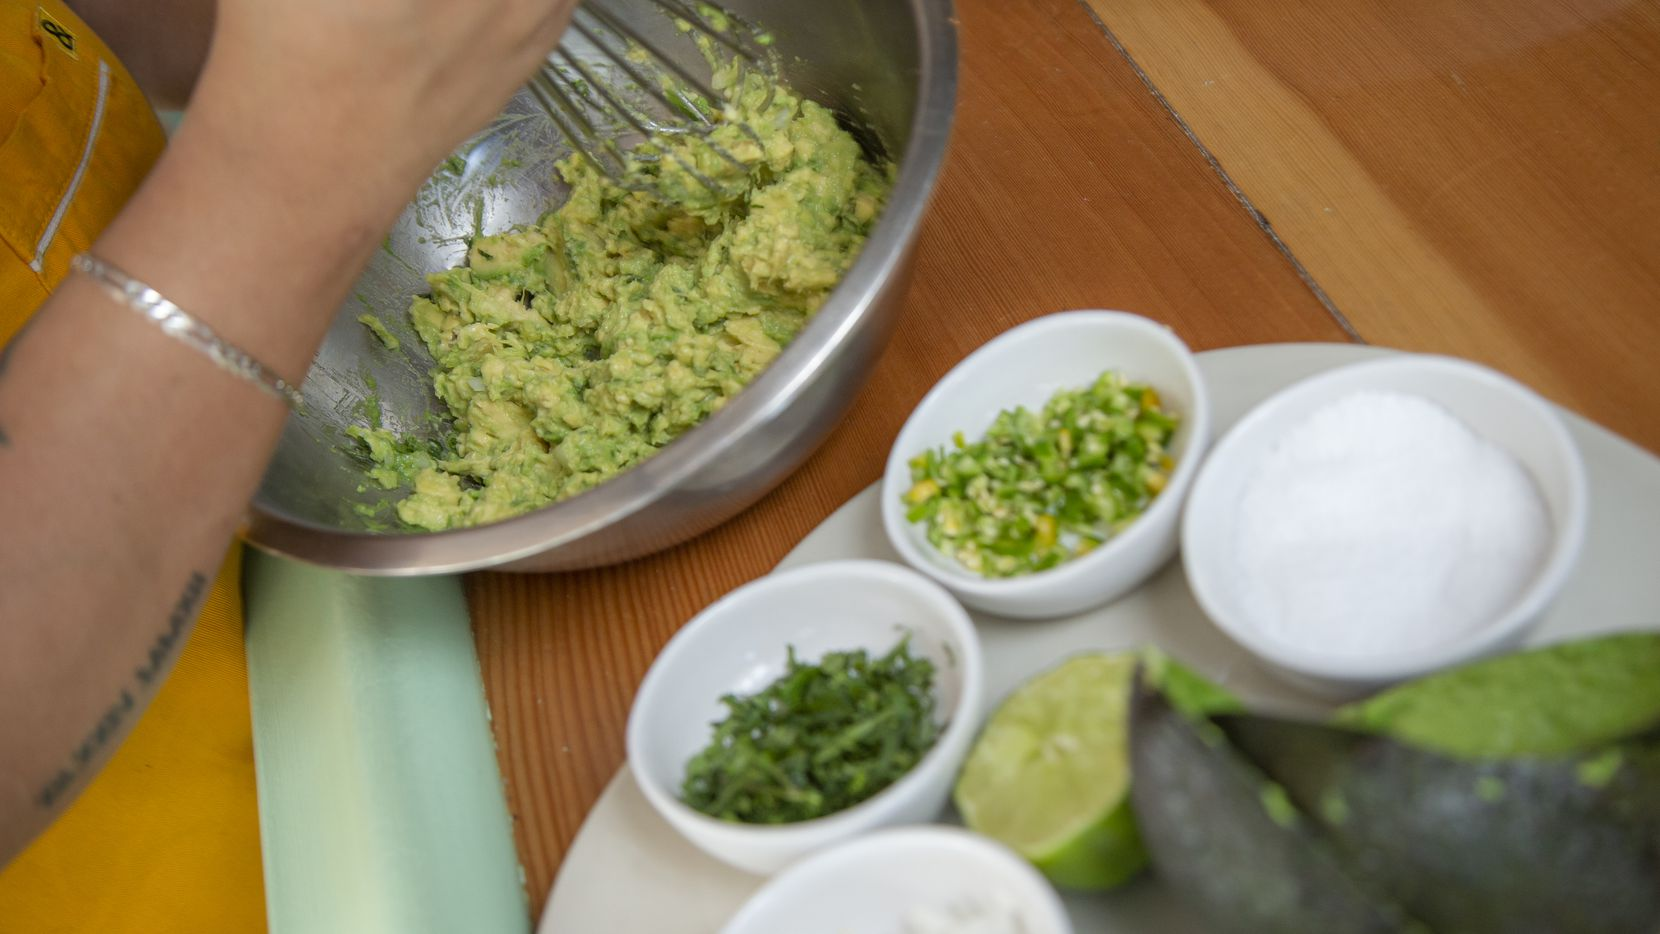 Chef Anastacia Quinones-Pittman prepares guacamole with onions, salt, lime juice, cilantro, and serrano peppers at Restaurant Jose, Wednesday, December 23, 2020.